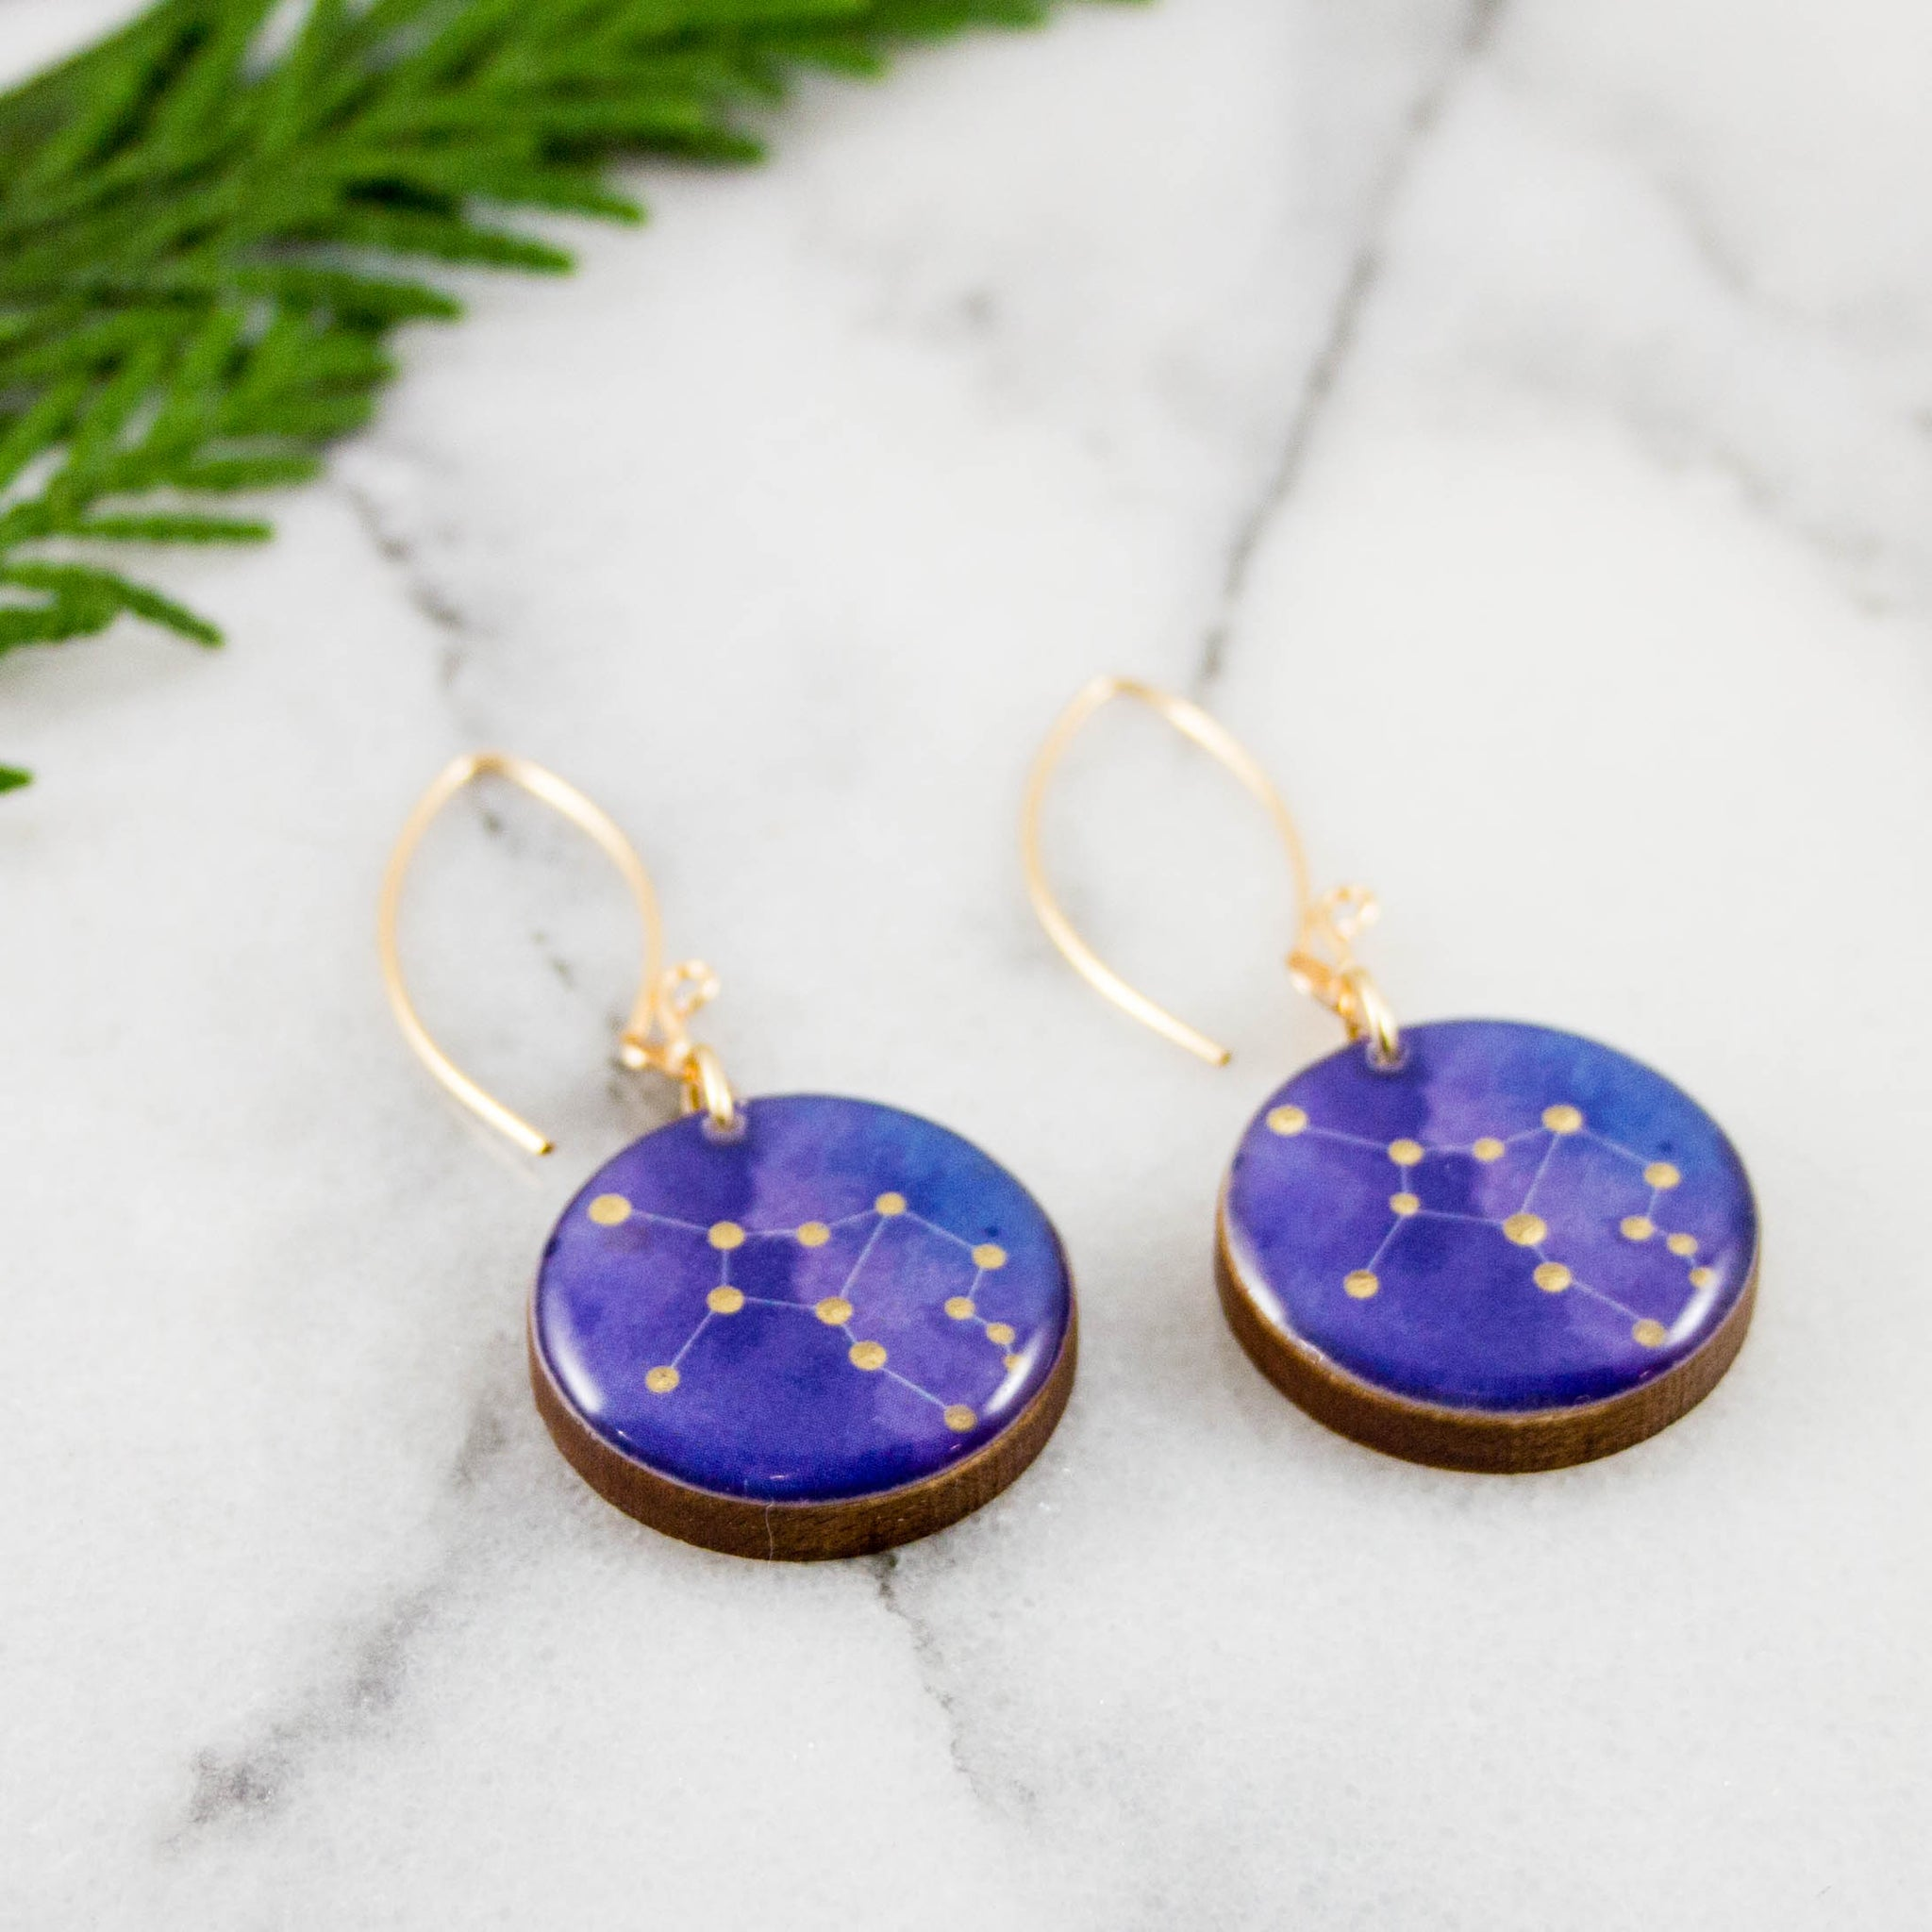 Virgo Handpainted Constellation Earrings